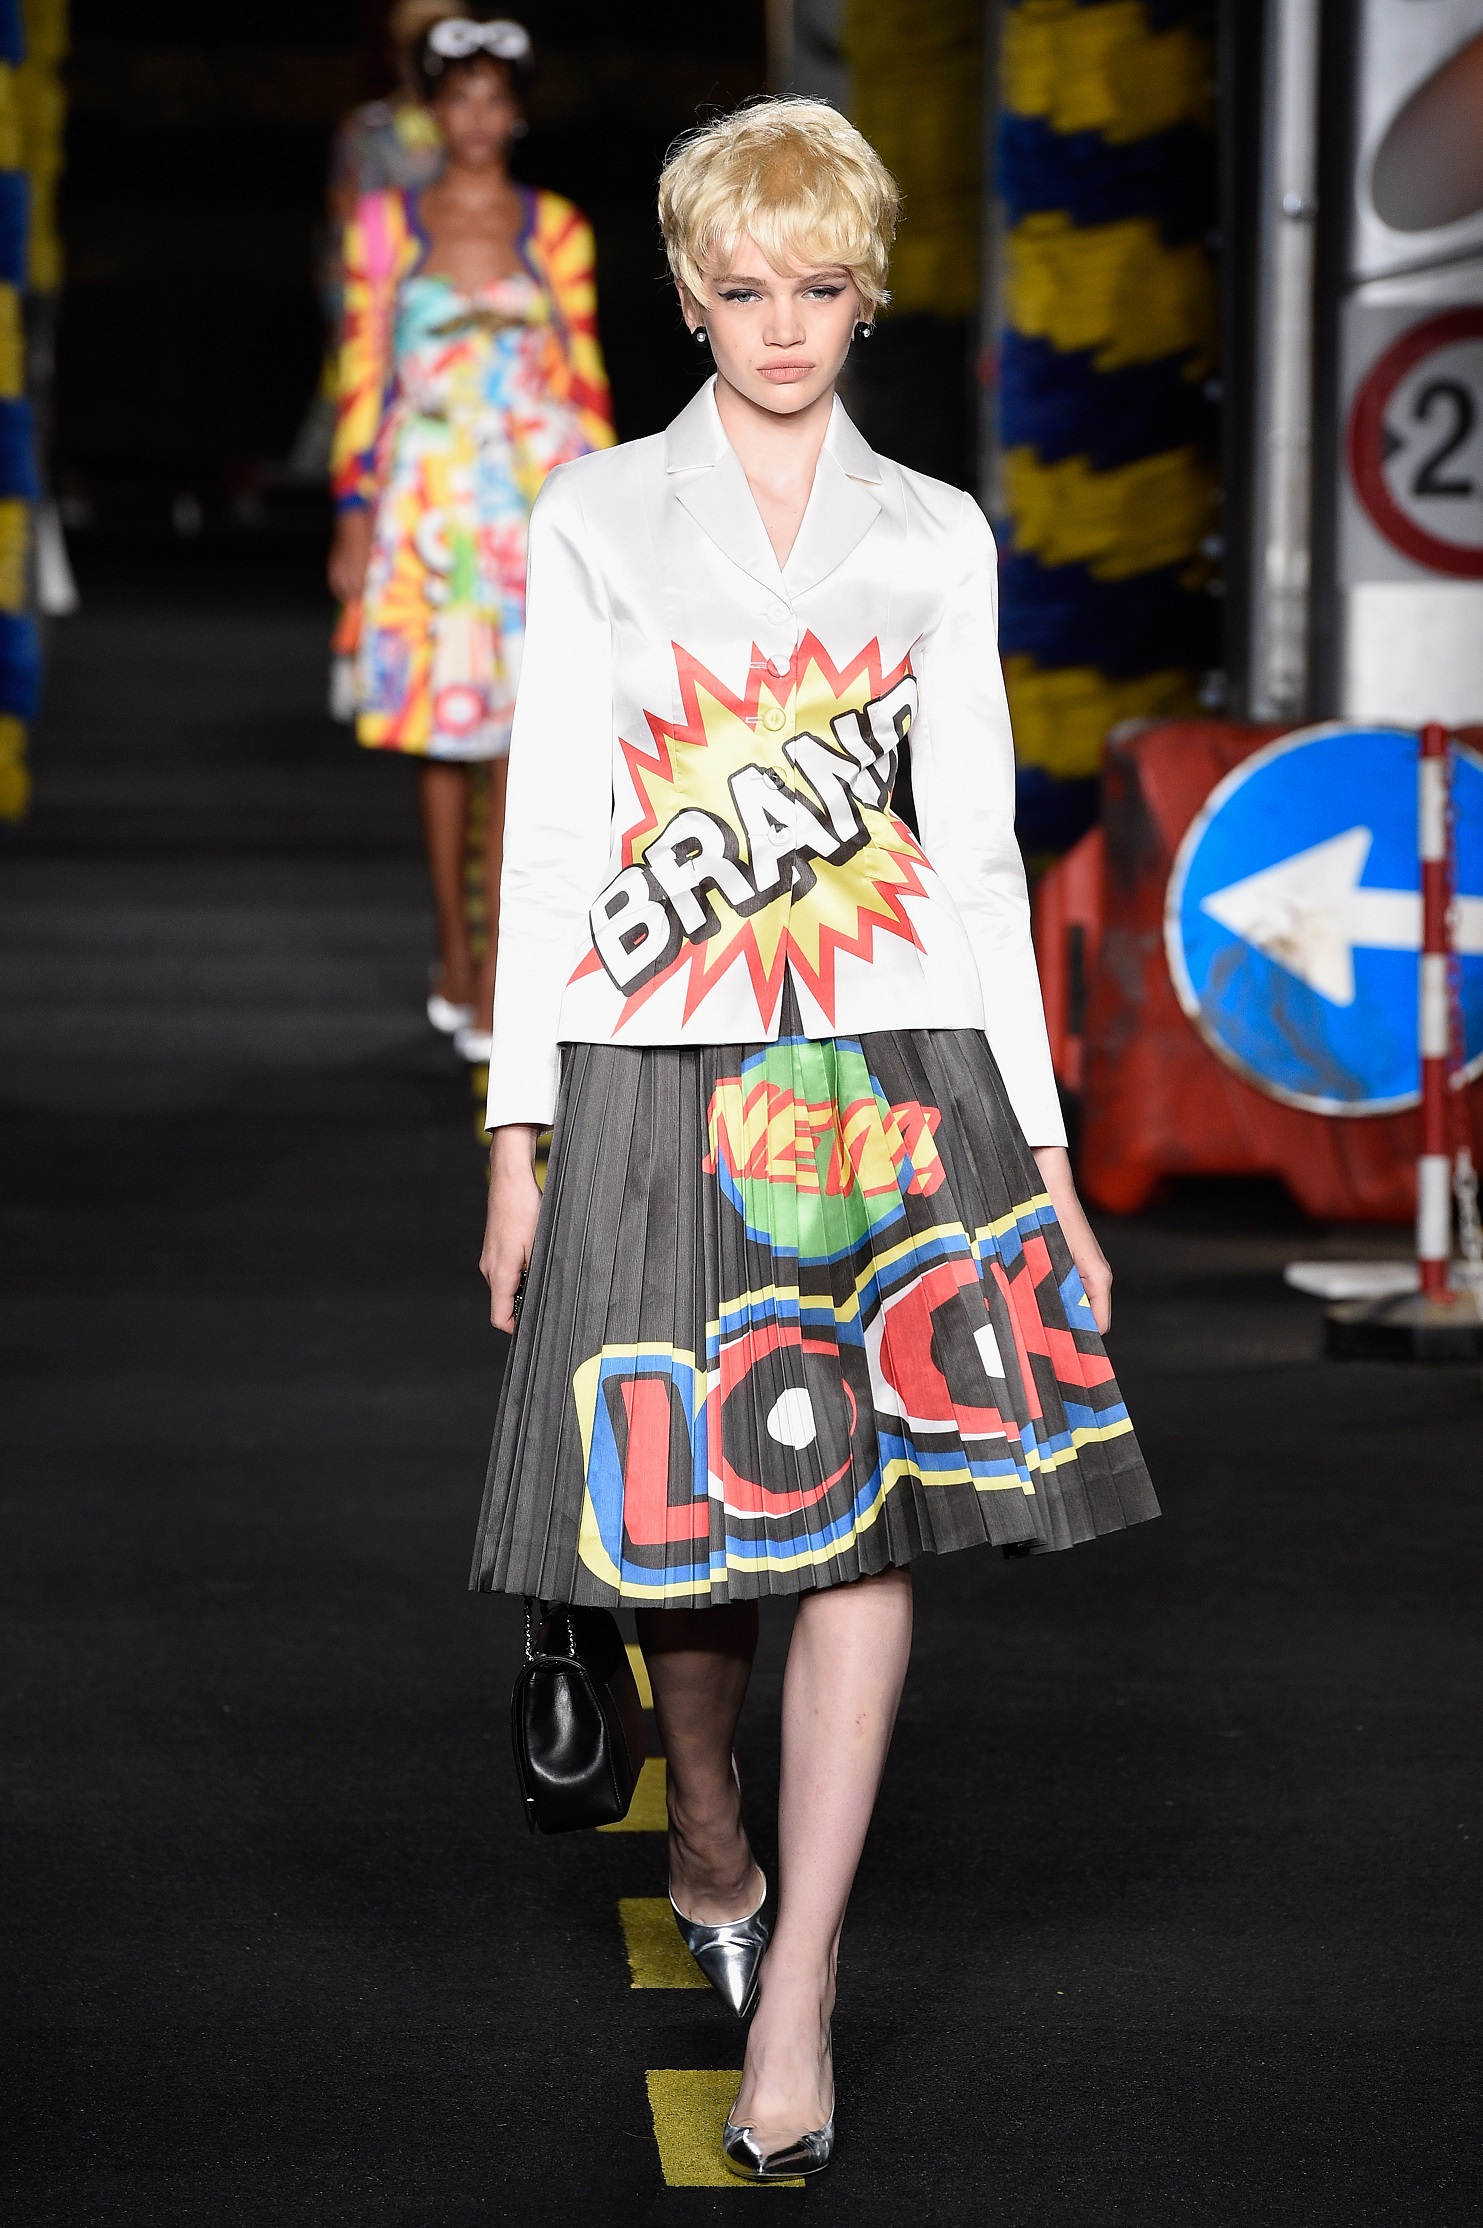 A model walks the runway during the Moschino fashion show as part of Milan Fashion Week Spring/Summer 2016 on September 24, 2015 in Milan, Italy.